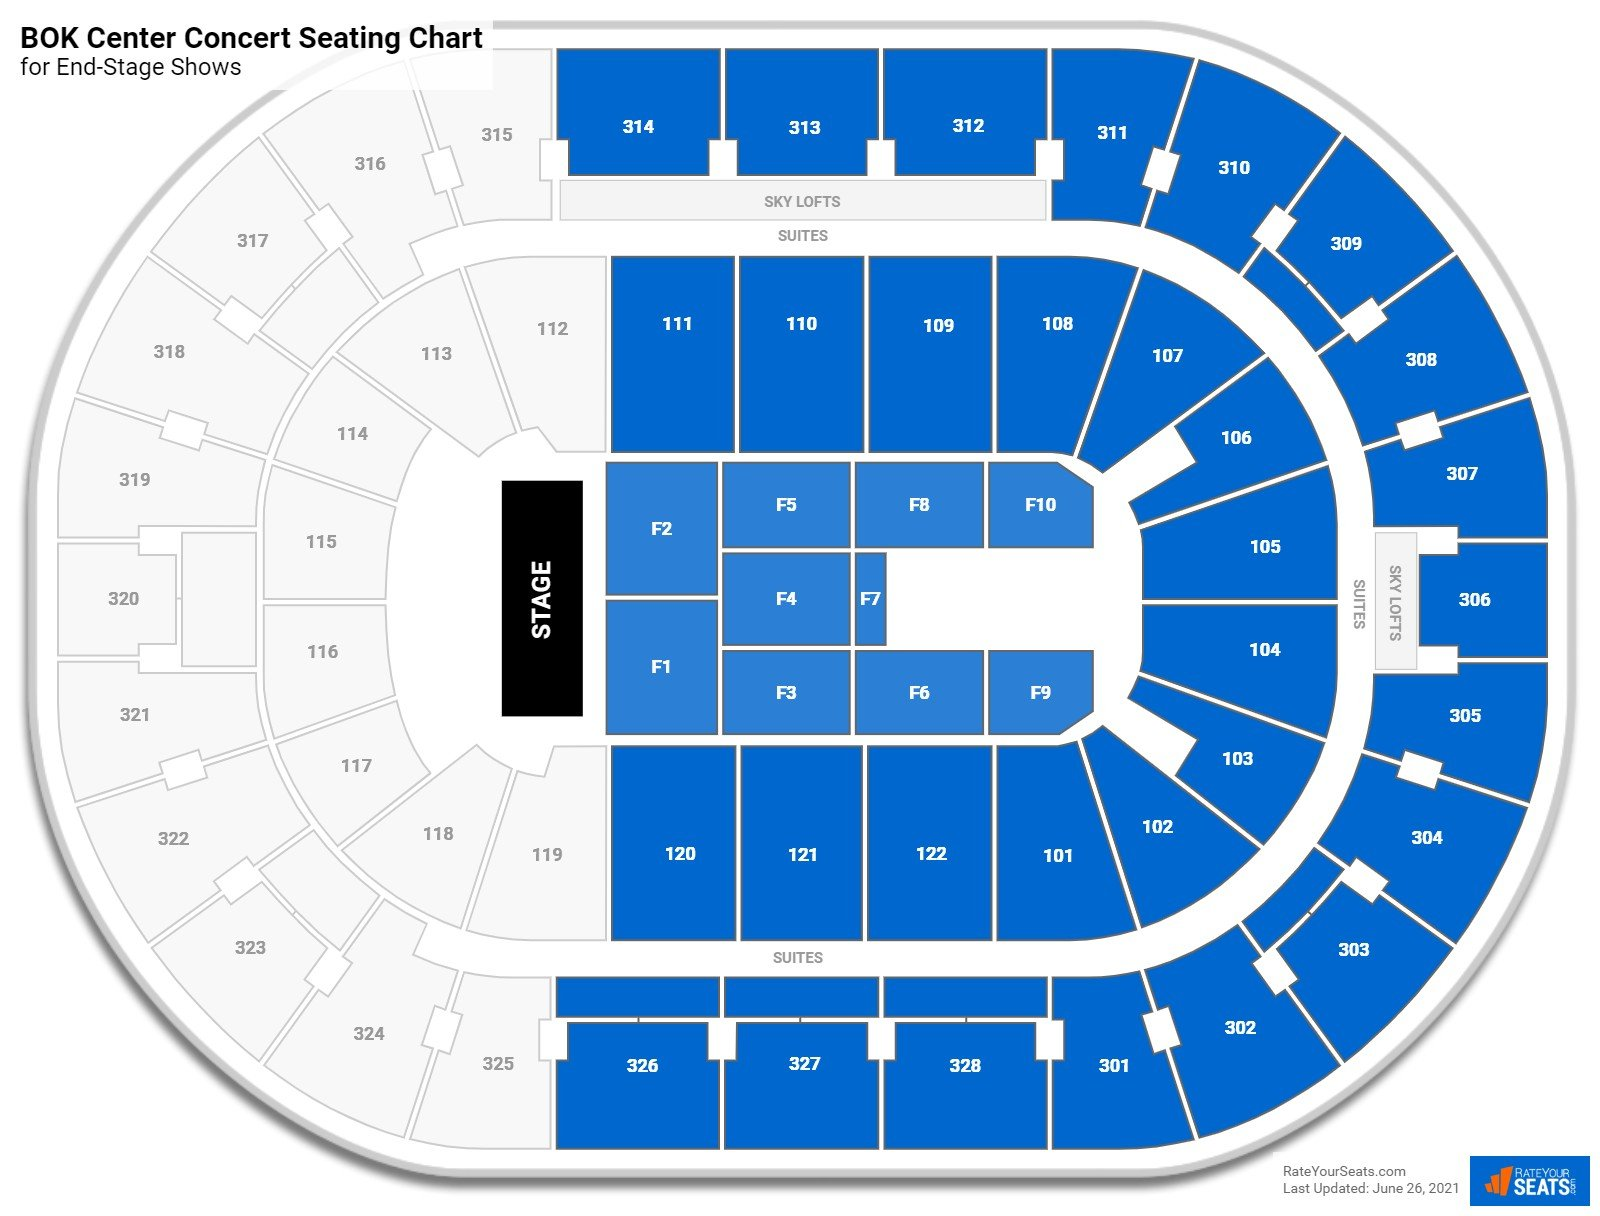 BOK Center Seating Chart for Concerts